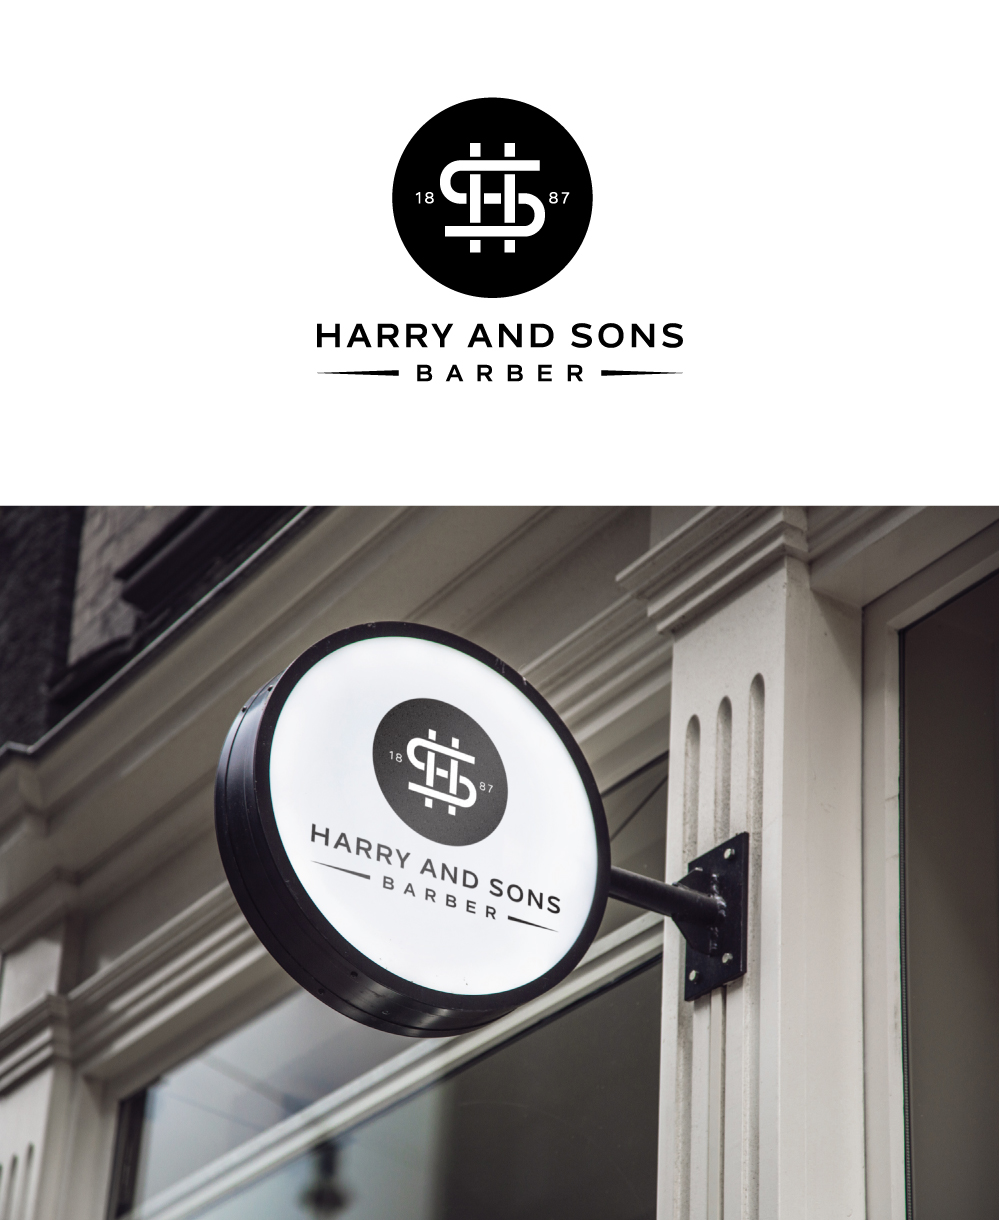 Logo Design by Tauhid Shaikh - Entry No. 191 in the Logo Design Contest Captivating Logo Design for Harry and Sons Barber.